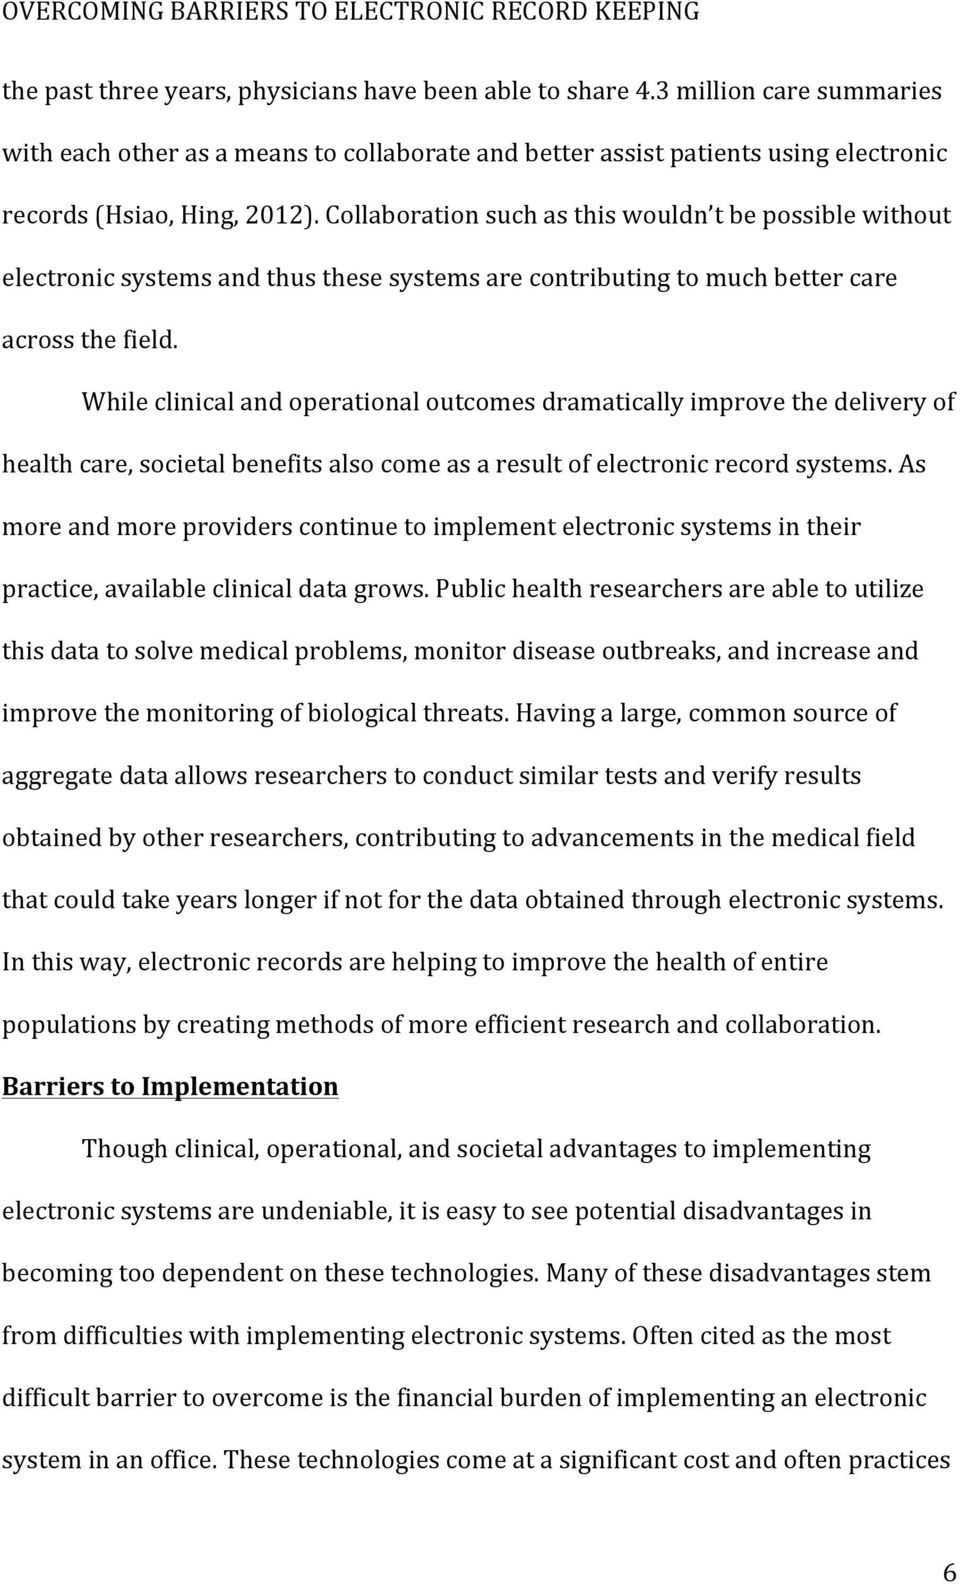 While clinical and operational outcomes dramatically improve the delivery of health care, societal benefits also come as a result of electronic record systems.